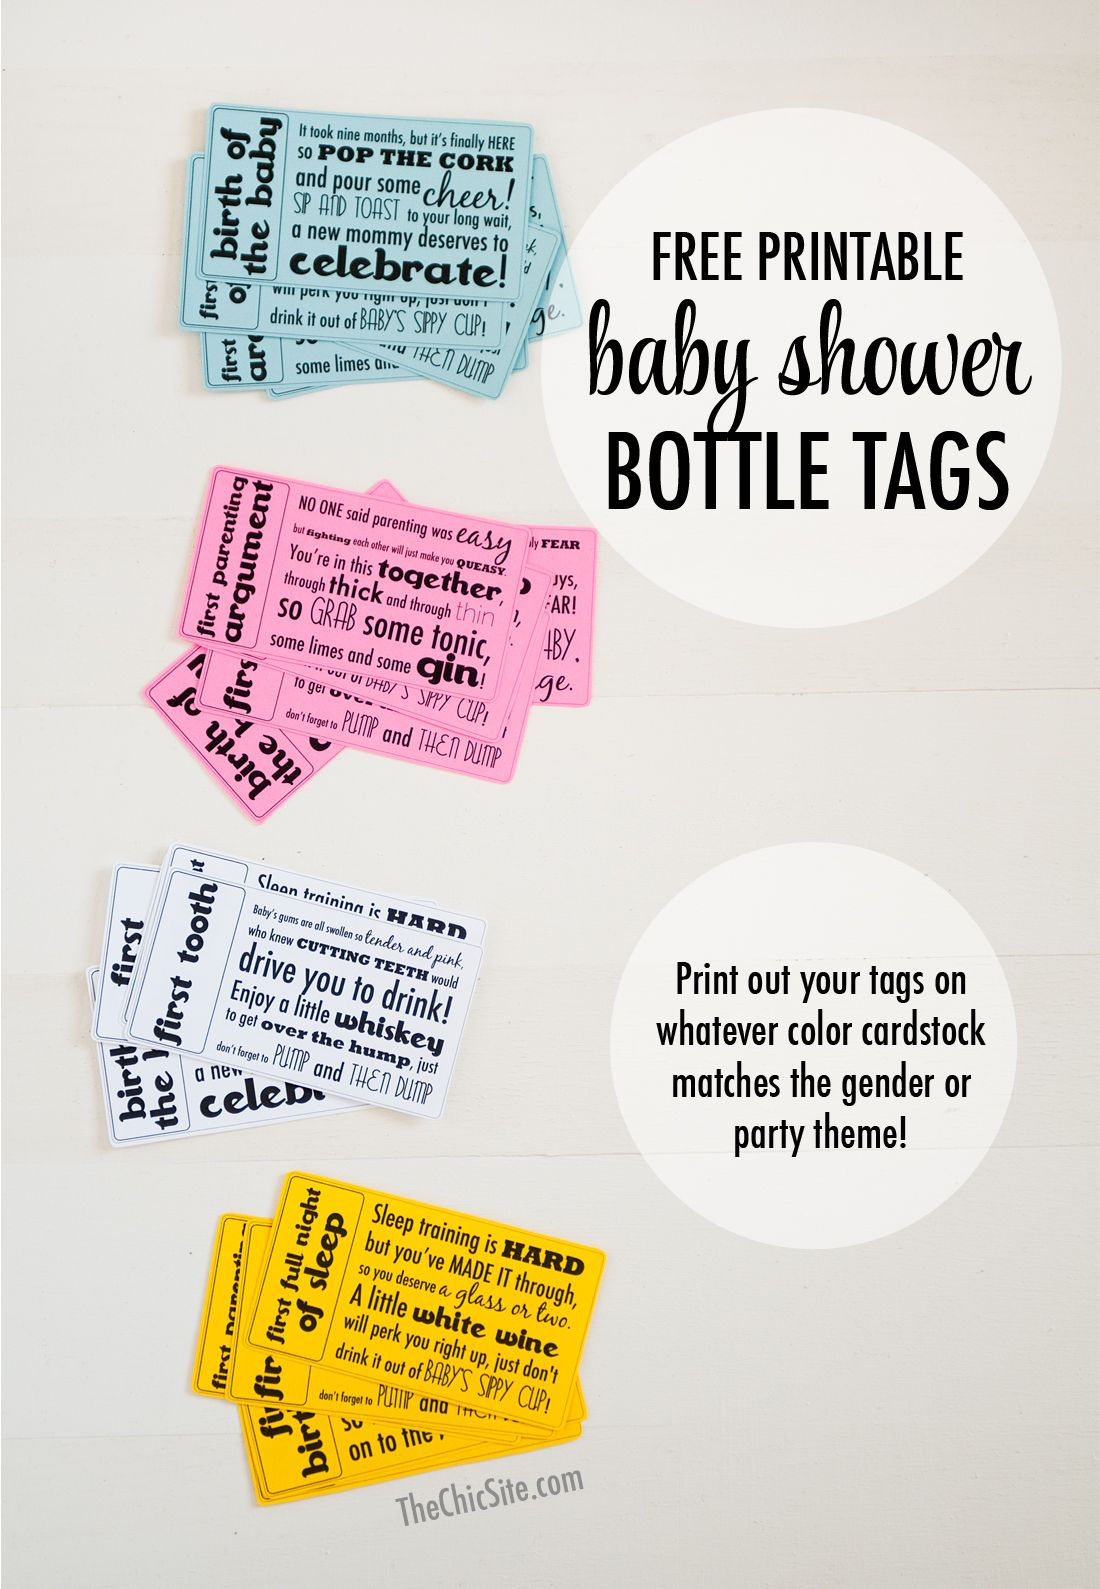 Baby shower gift tags baby shower gift basket free printable gift free printable gift tags for a baby shower gift basket negle Images